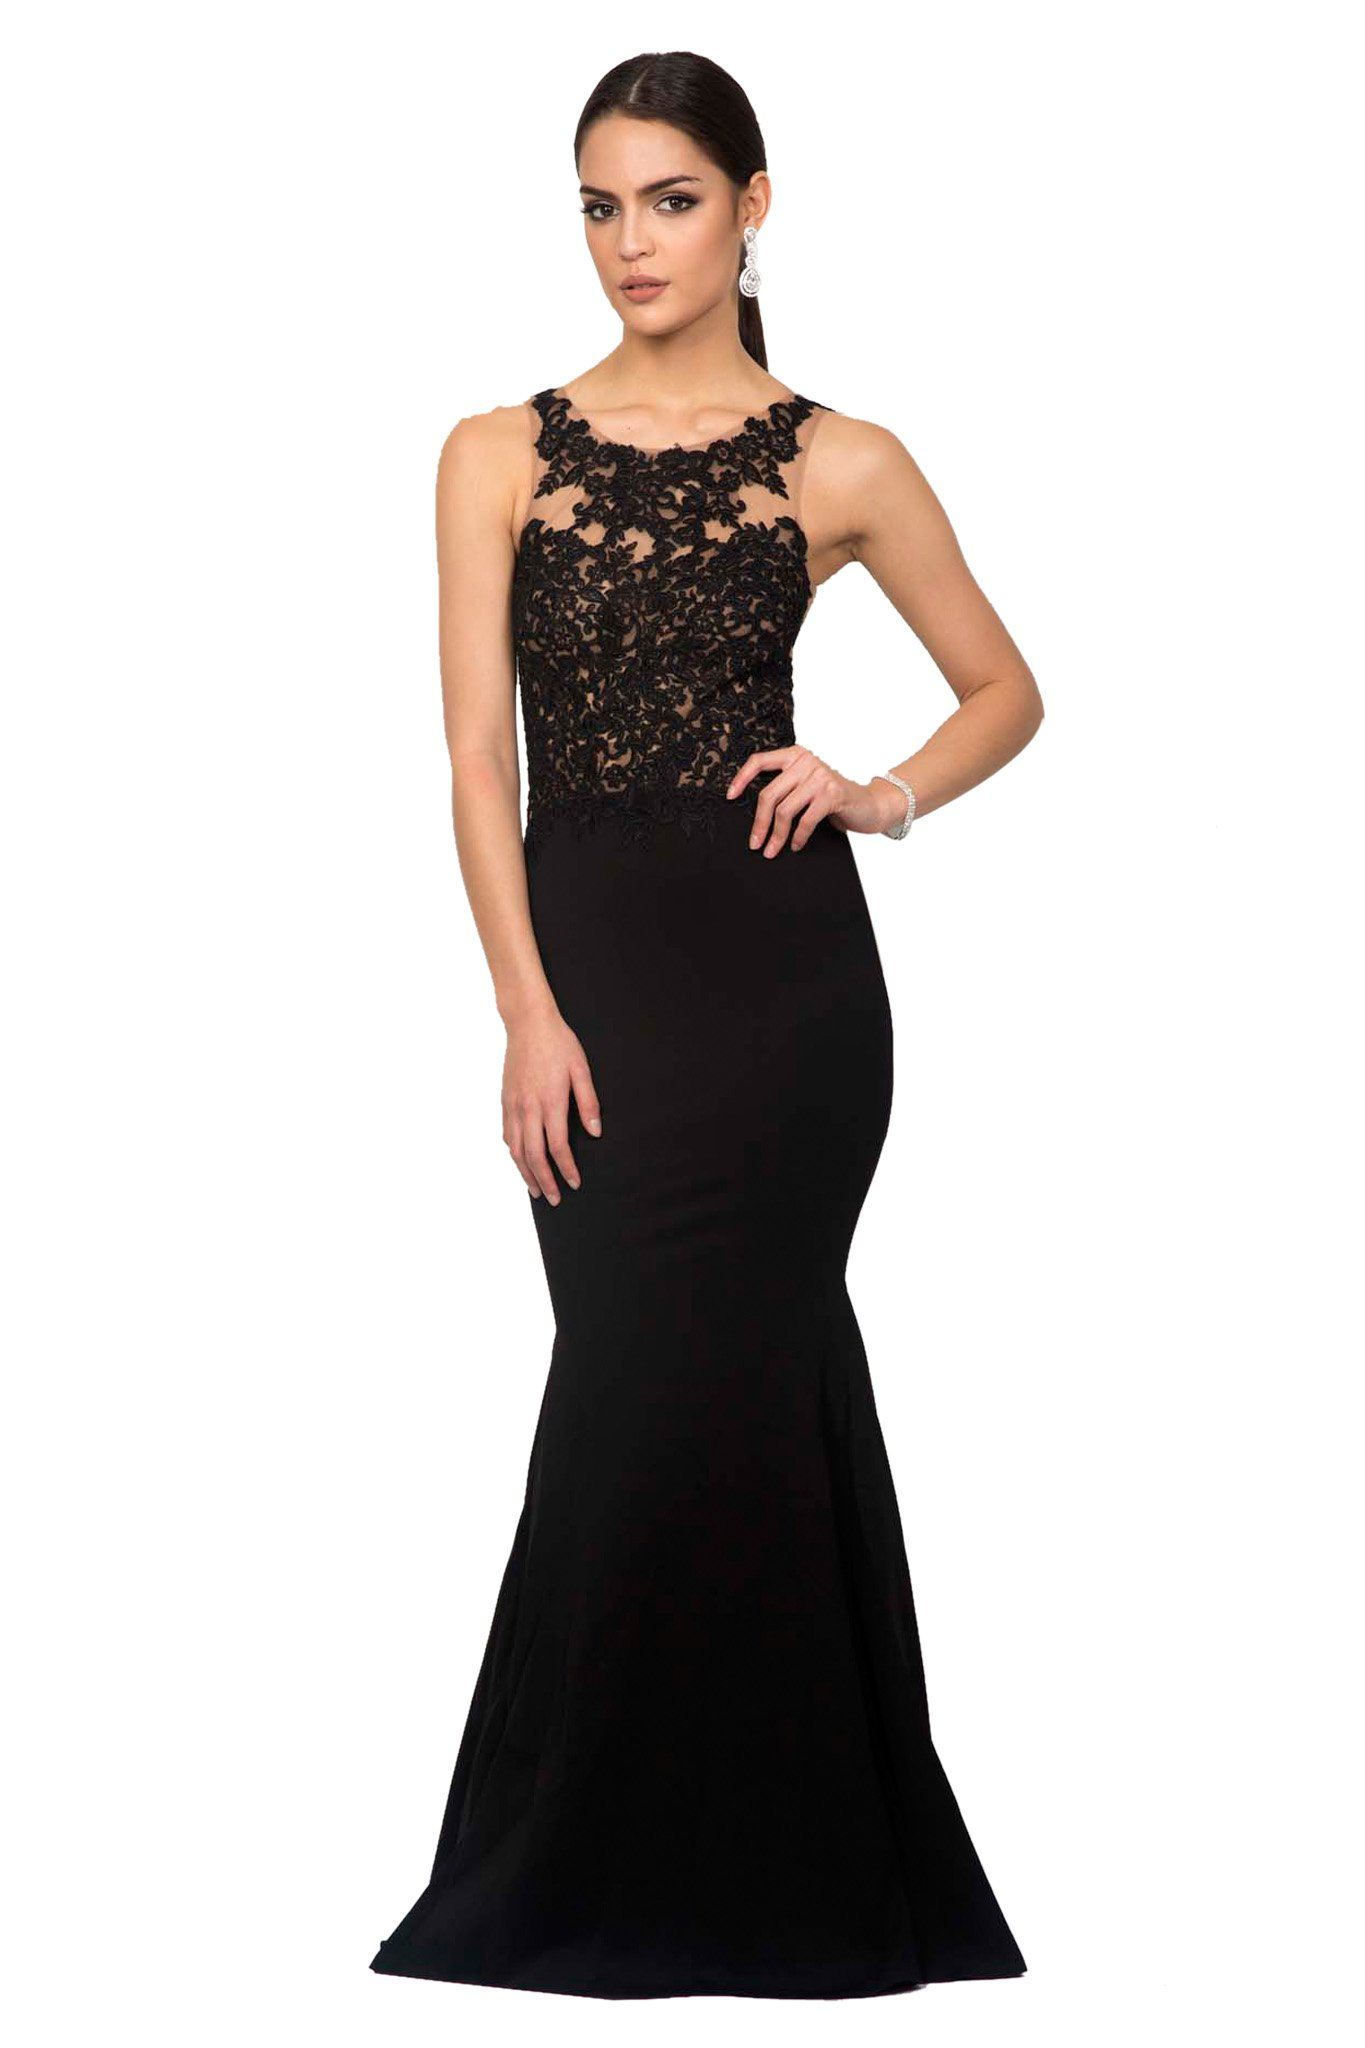 Black sleeveless floor-length evening lace gown with nude illusion mesh detailing, fitted style, and mermaid silhouette